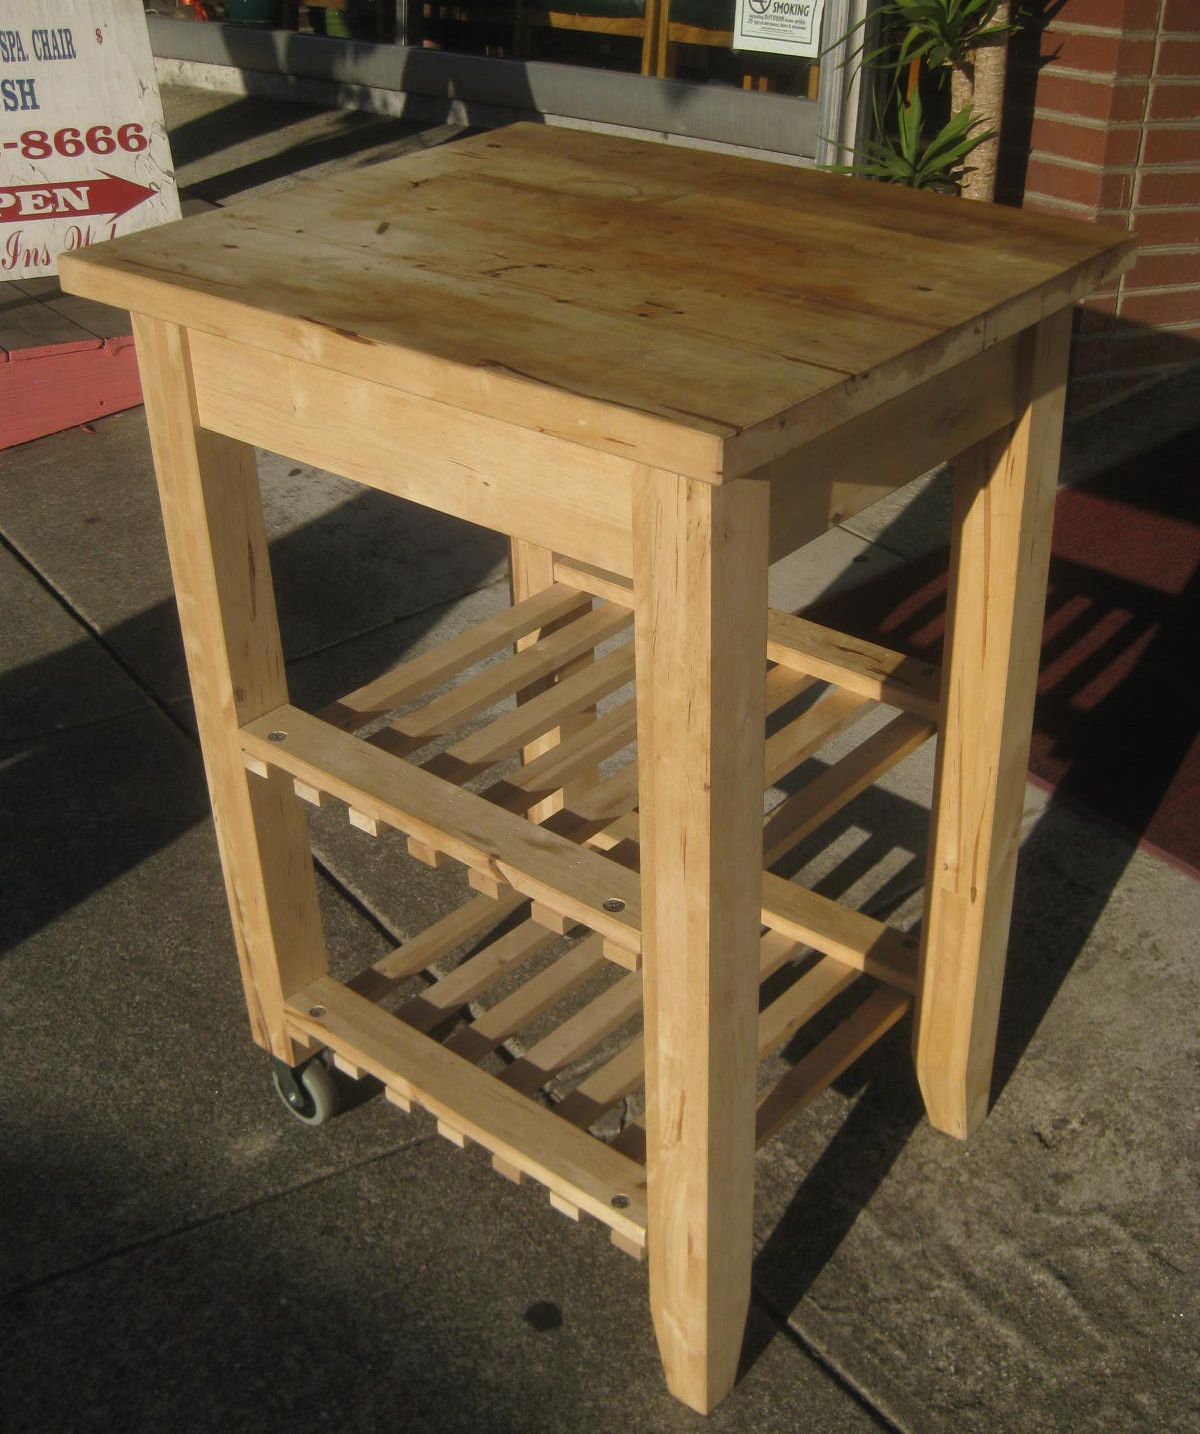 UHURU FURNITURE & COLLECTIBLES: SOLD - Rolling Butcher Block